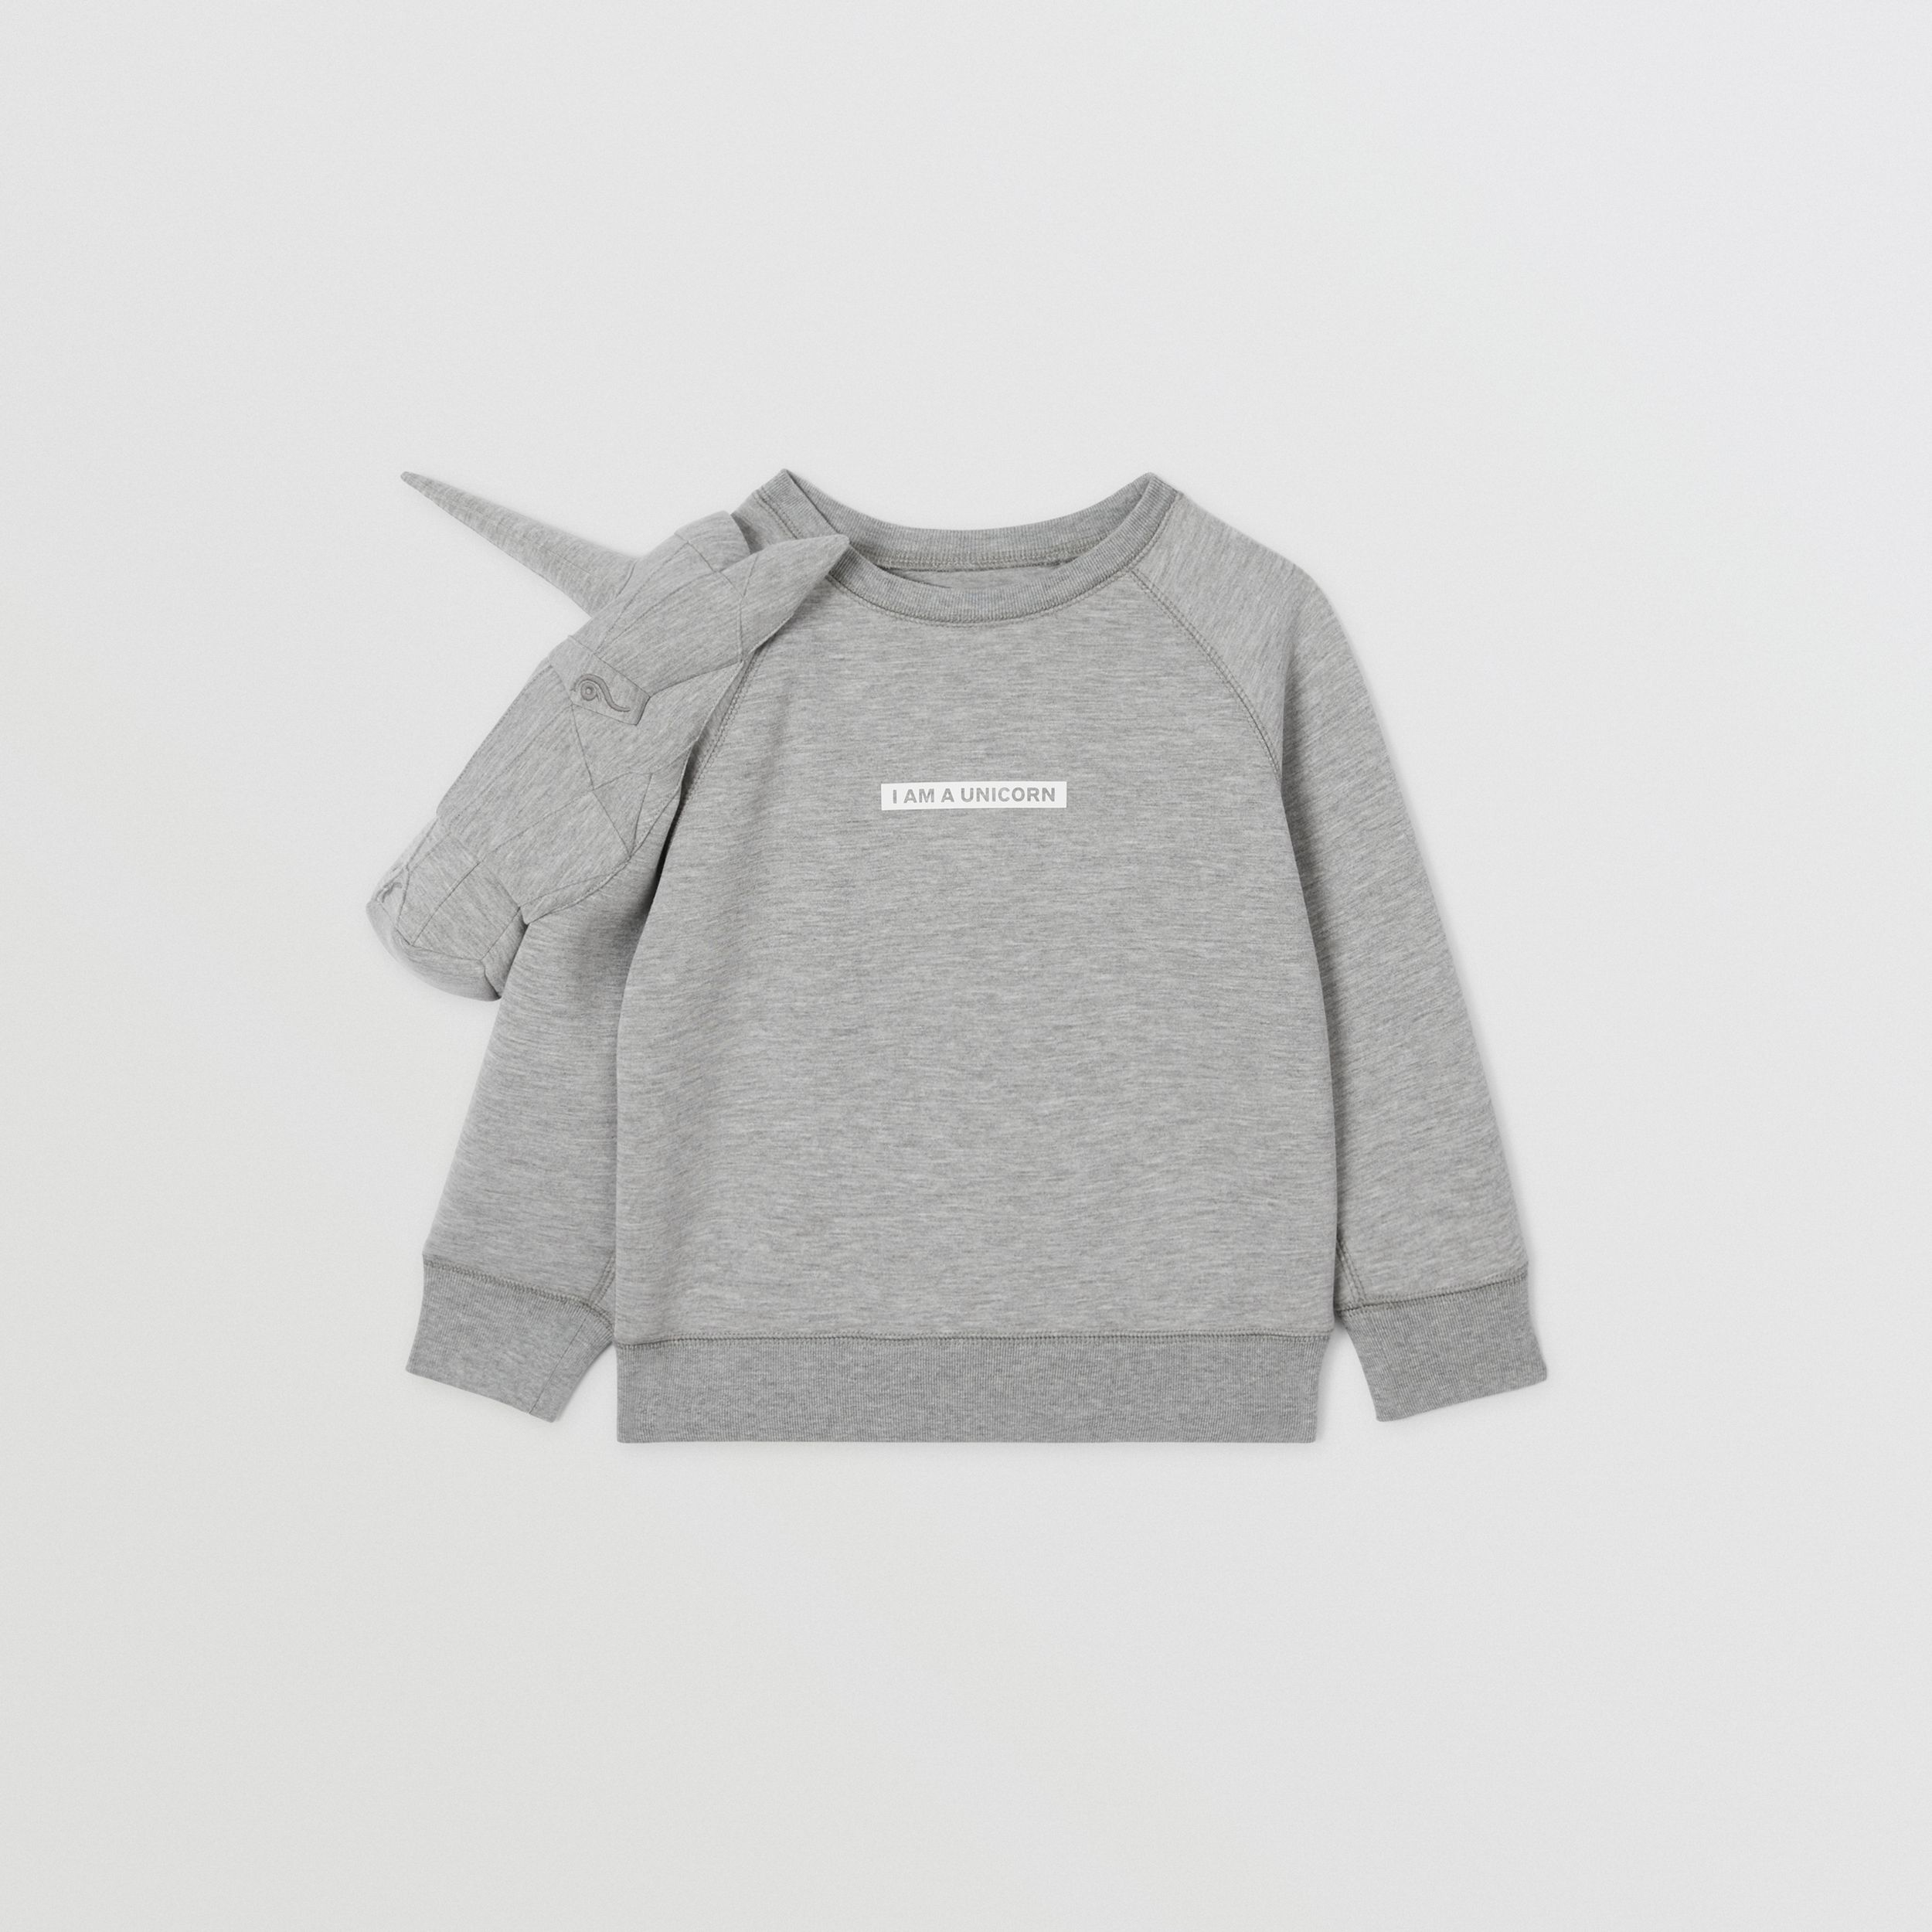 3D Unicorn Sweatshirt – Online Exclusive in Grey Melange | Burberry - 1